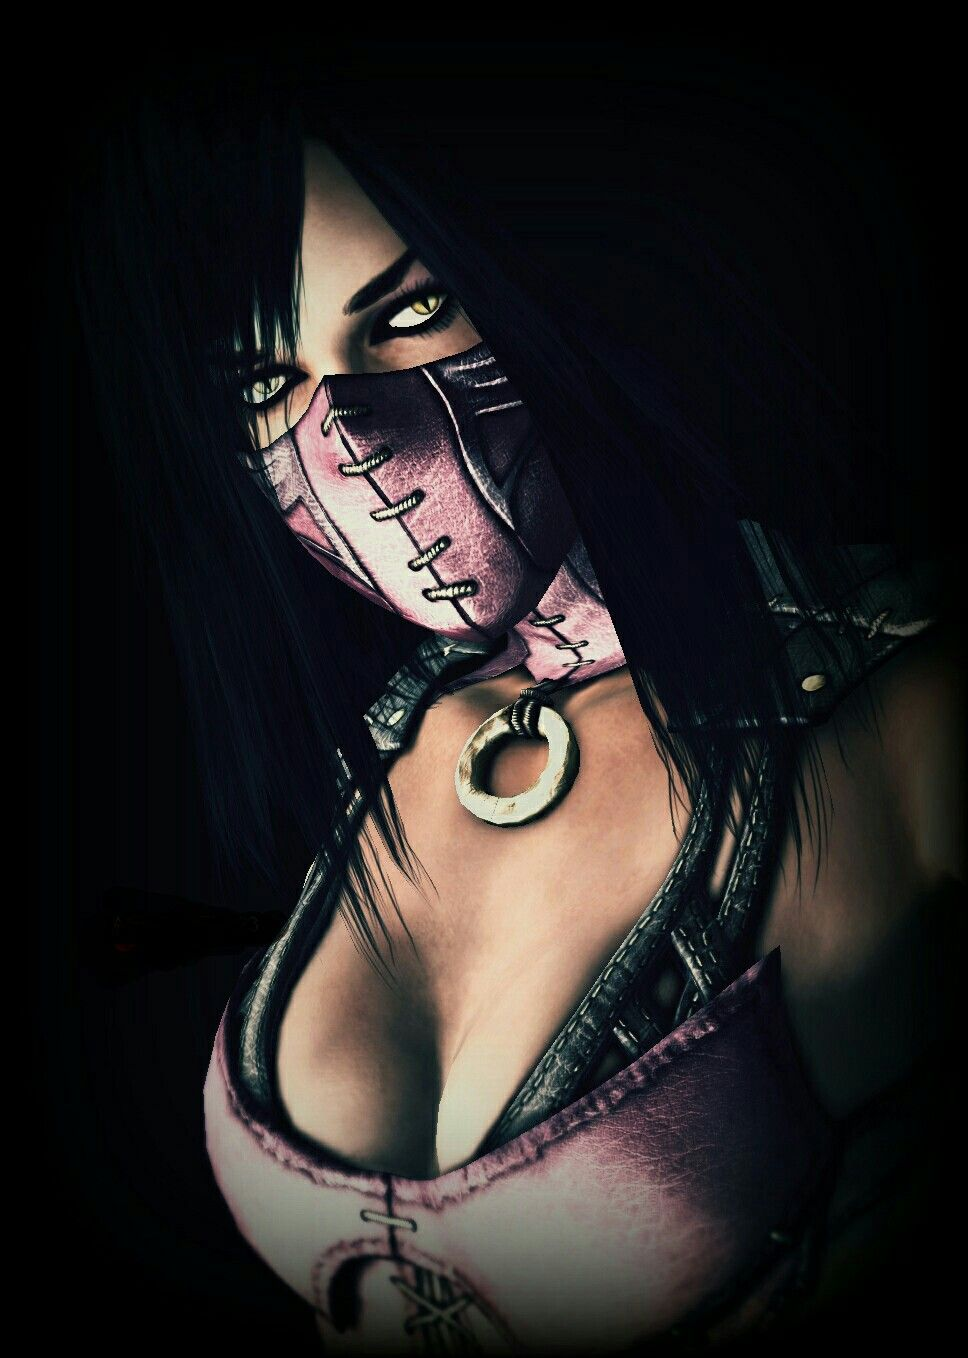 Mileena Mortal Kombat Phone Wallpaper